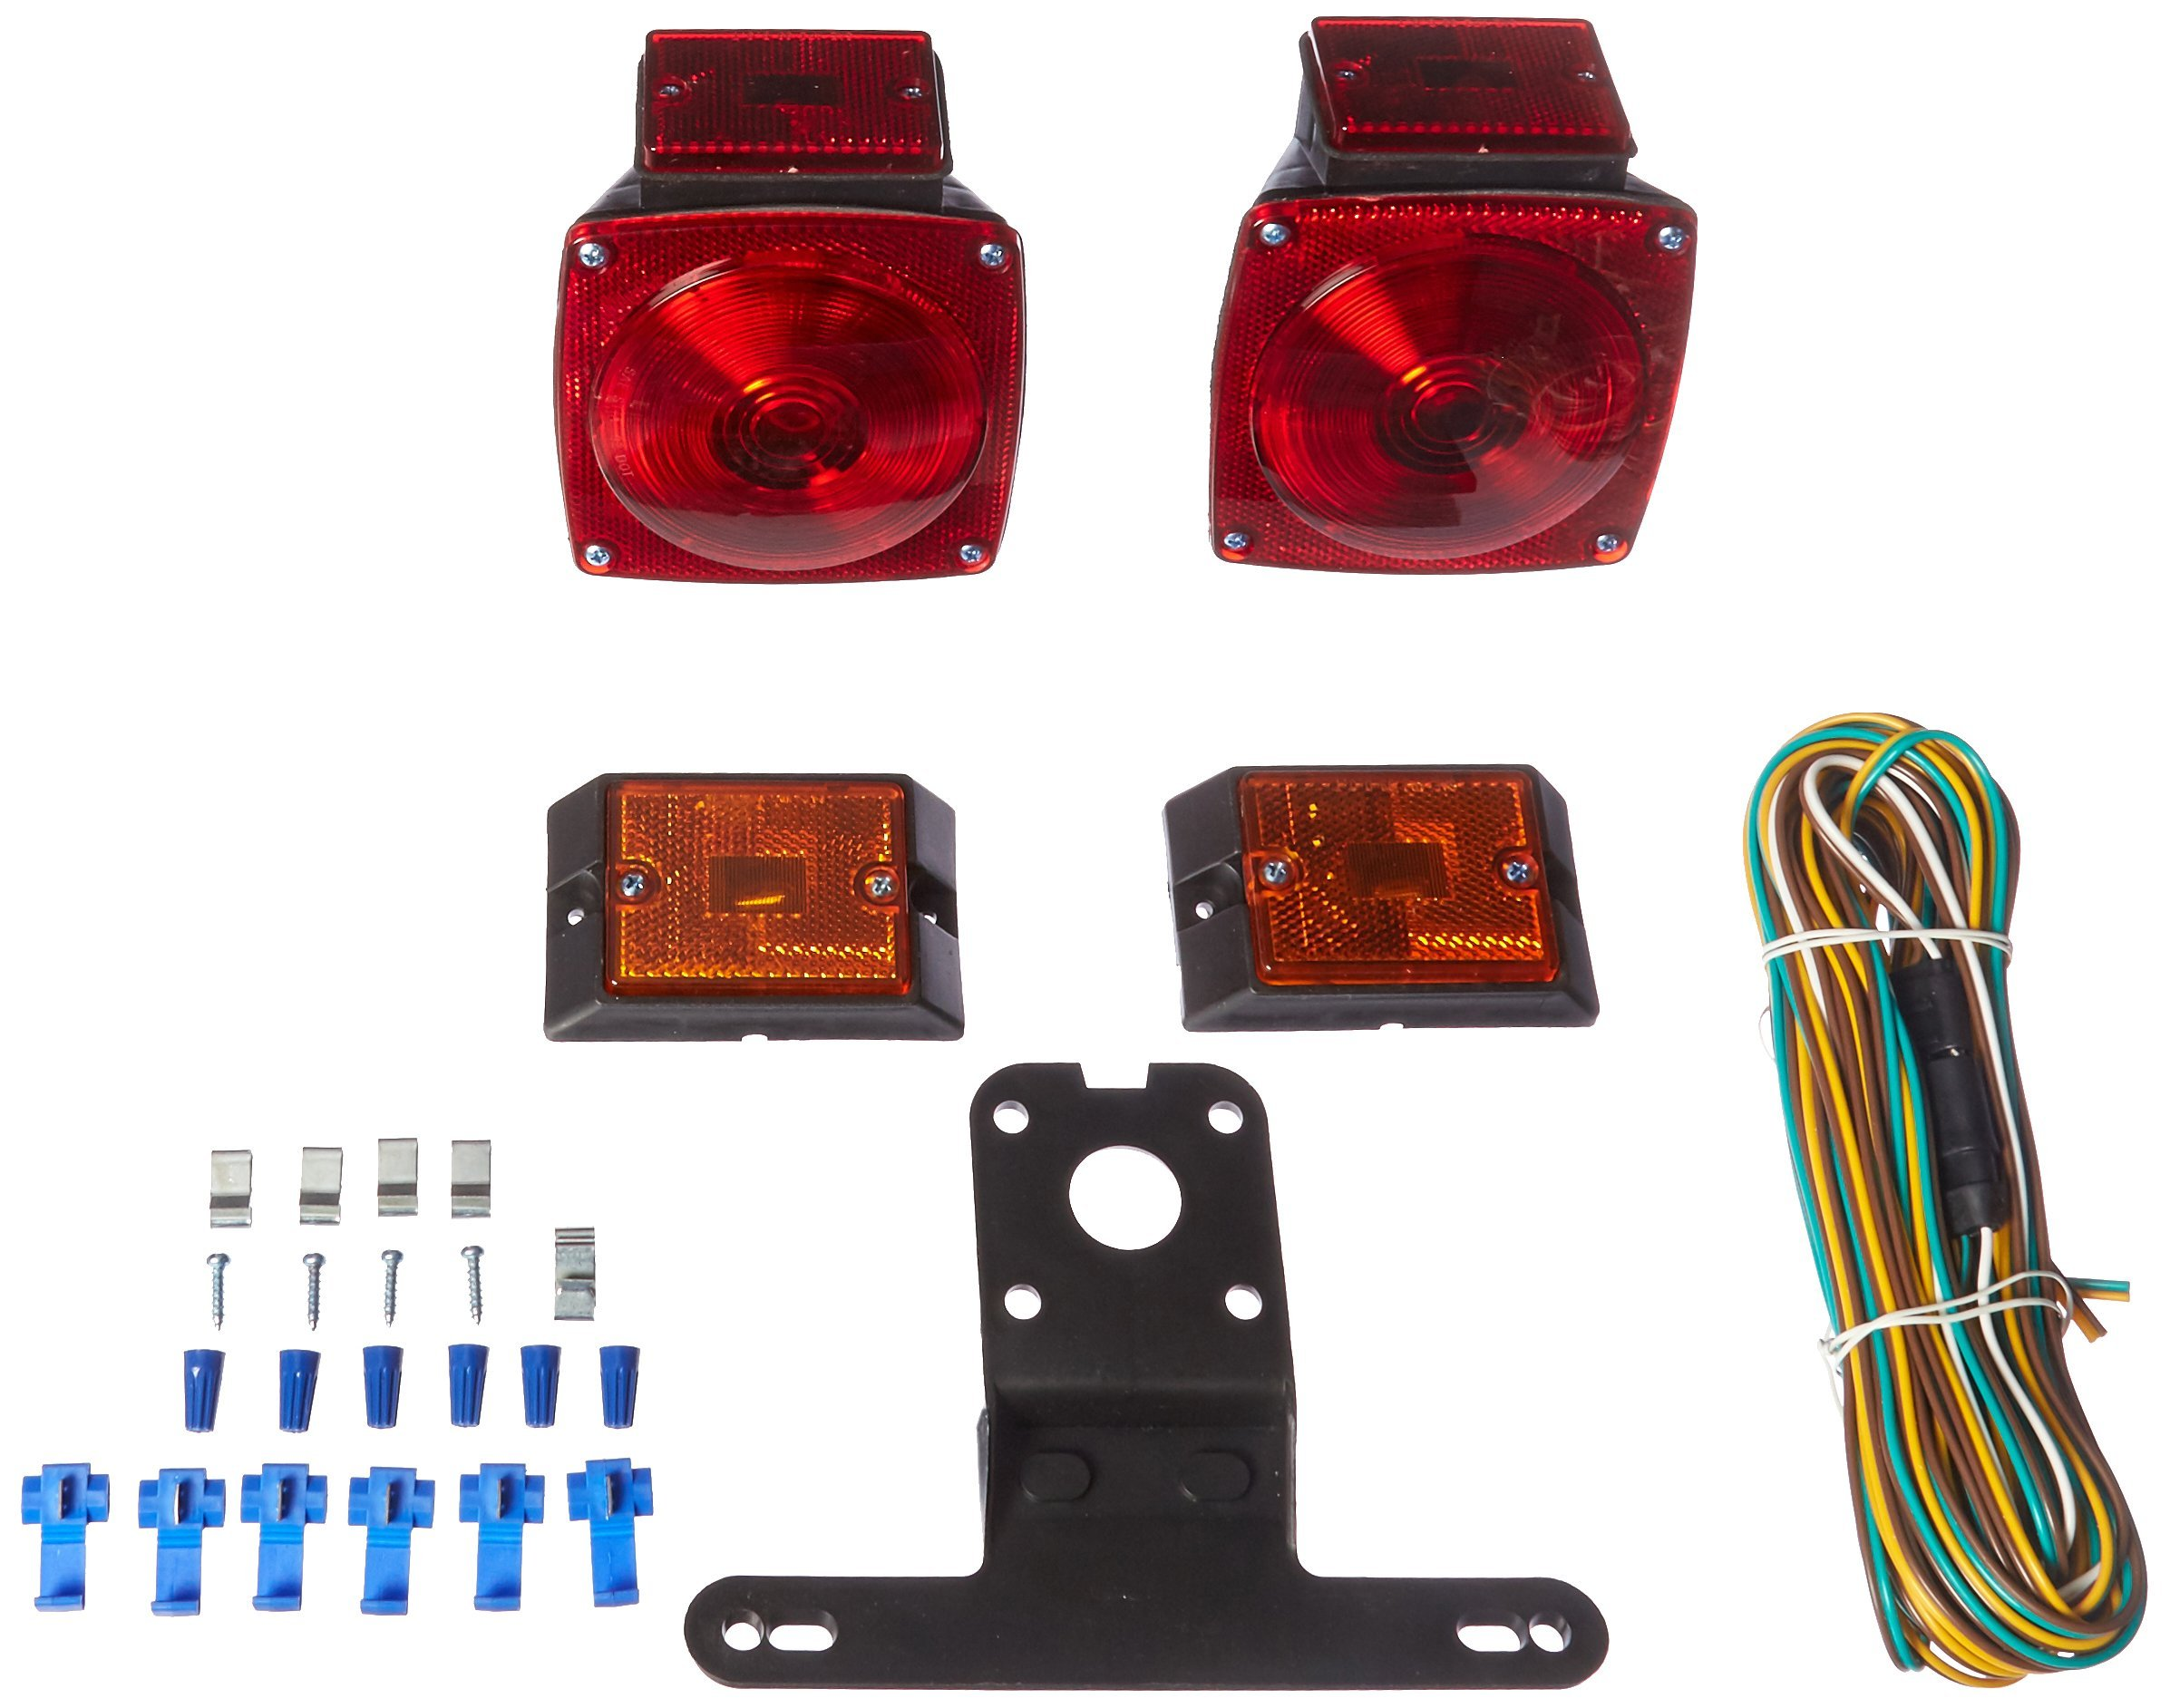 MaxxHaul 70094 12V Light Kit for Trailers Under 80'' by MaxxHaul